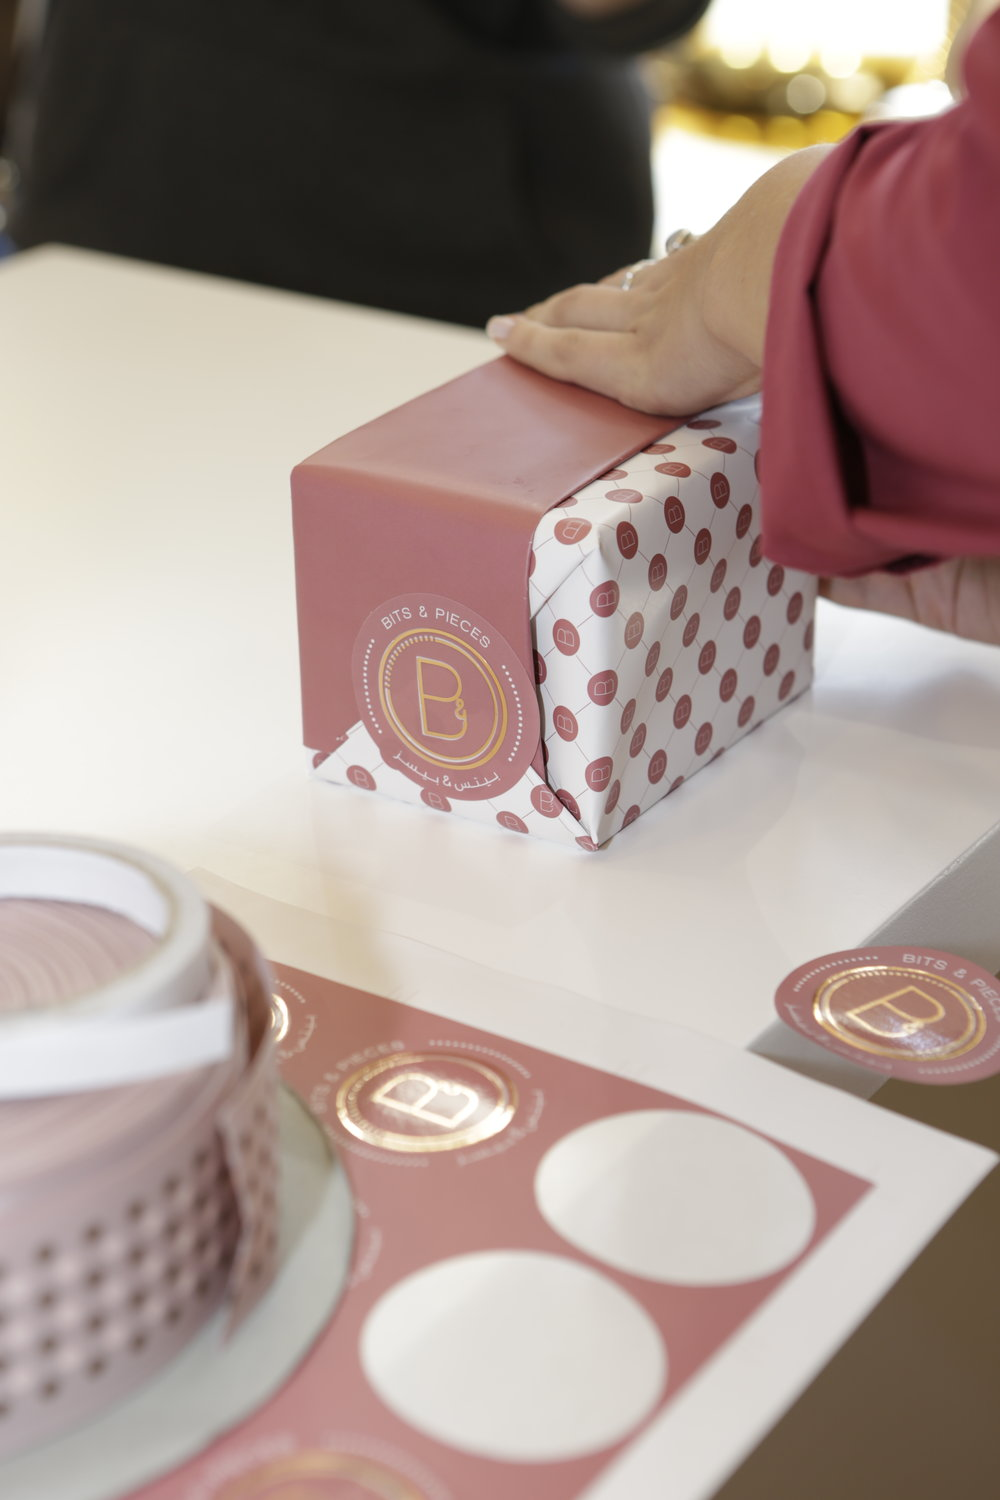 The art of gift wrapping, with the experts from BIT&Pieces